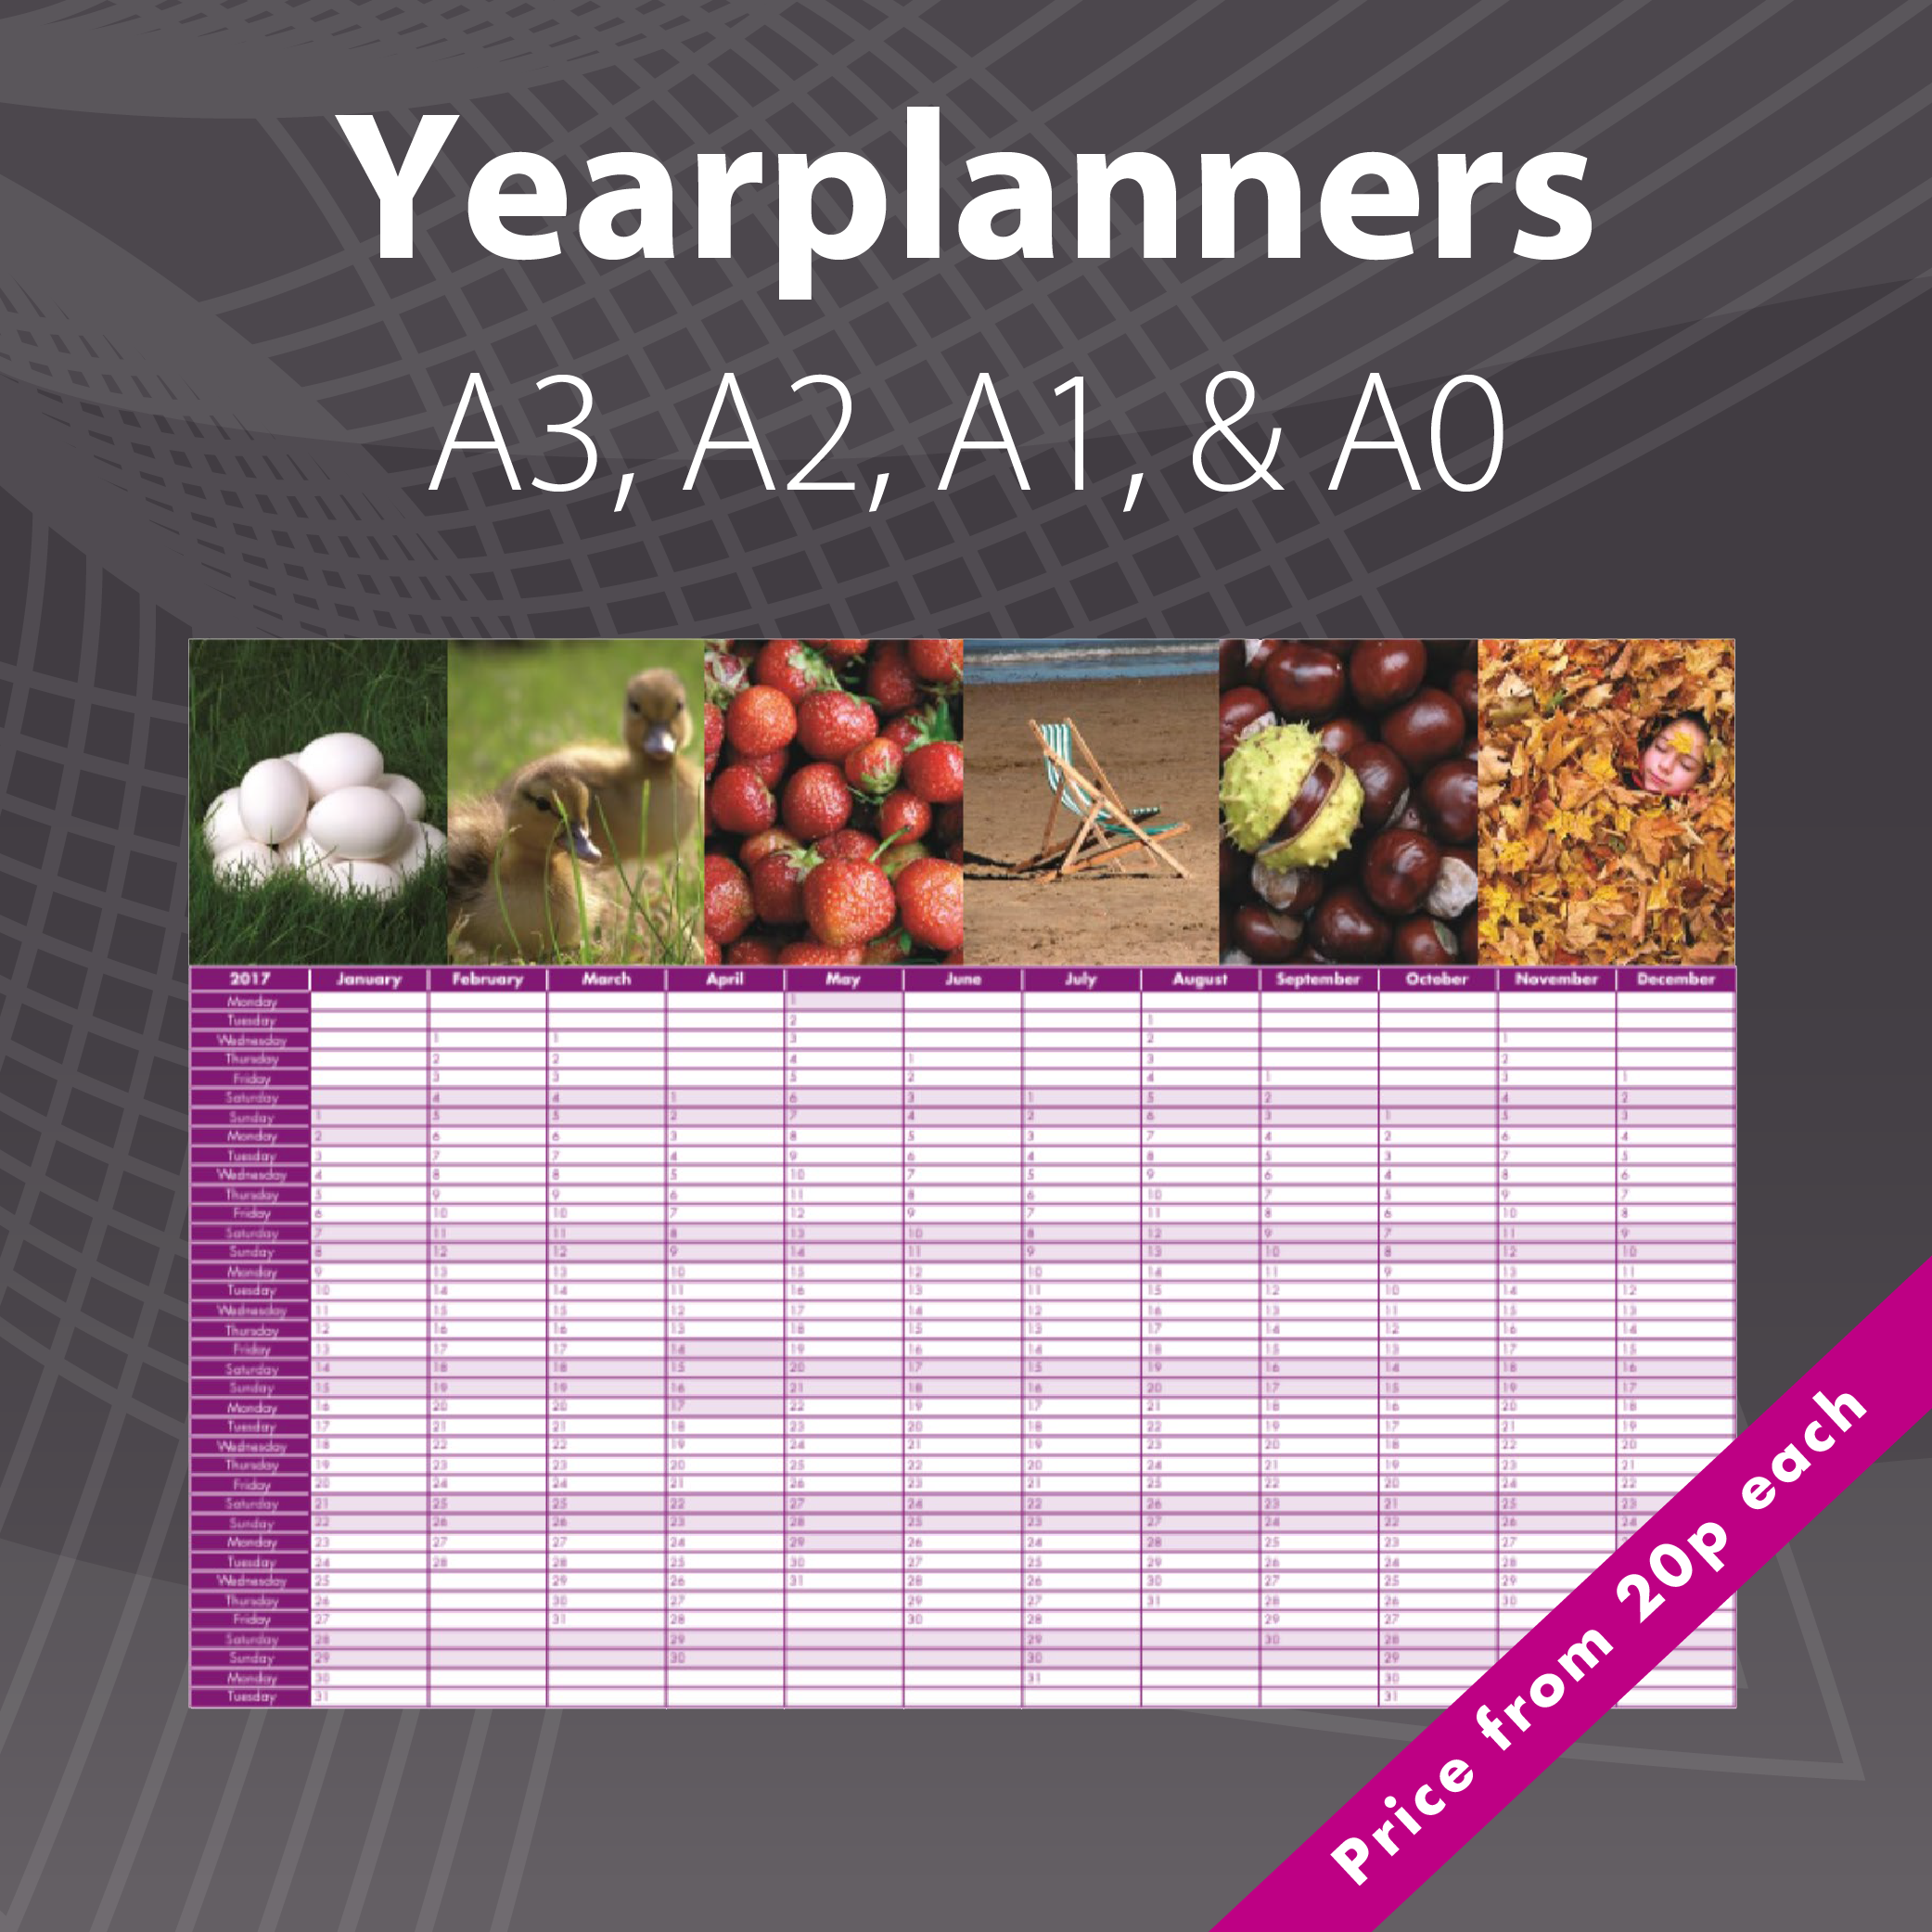 2020 Photo Yearplanners & Wallplanners